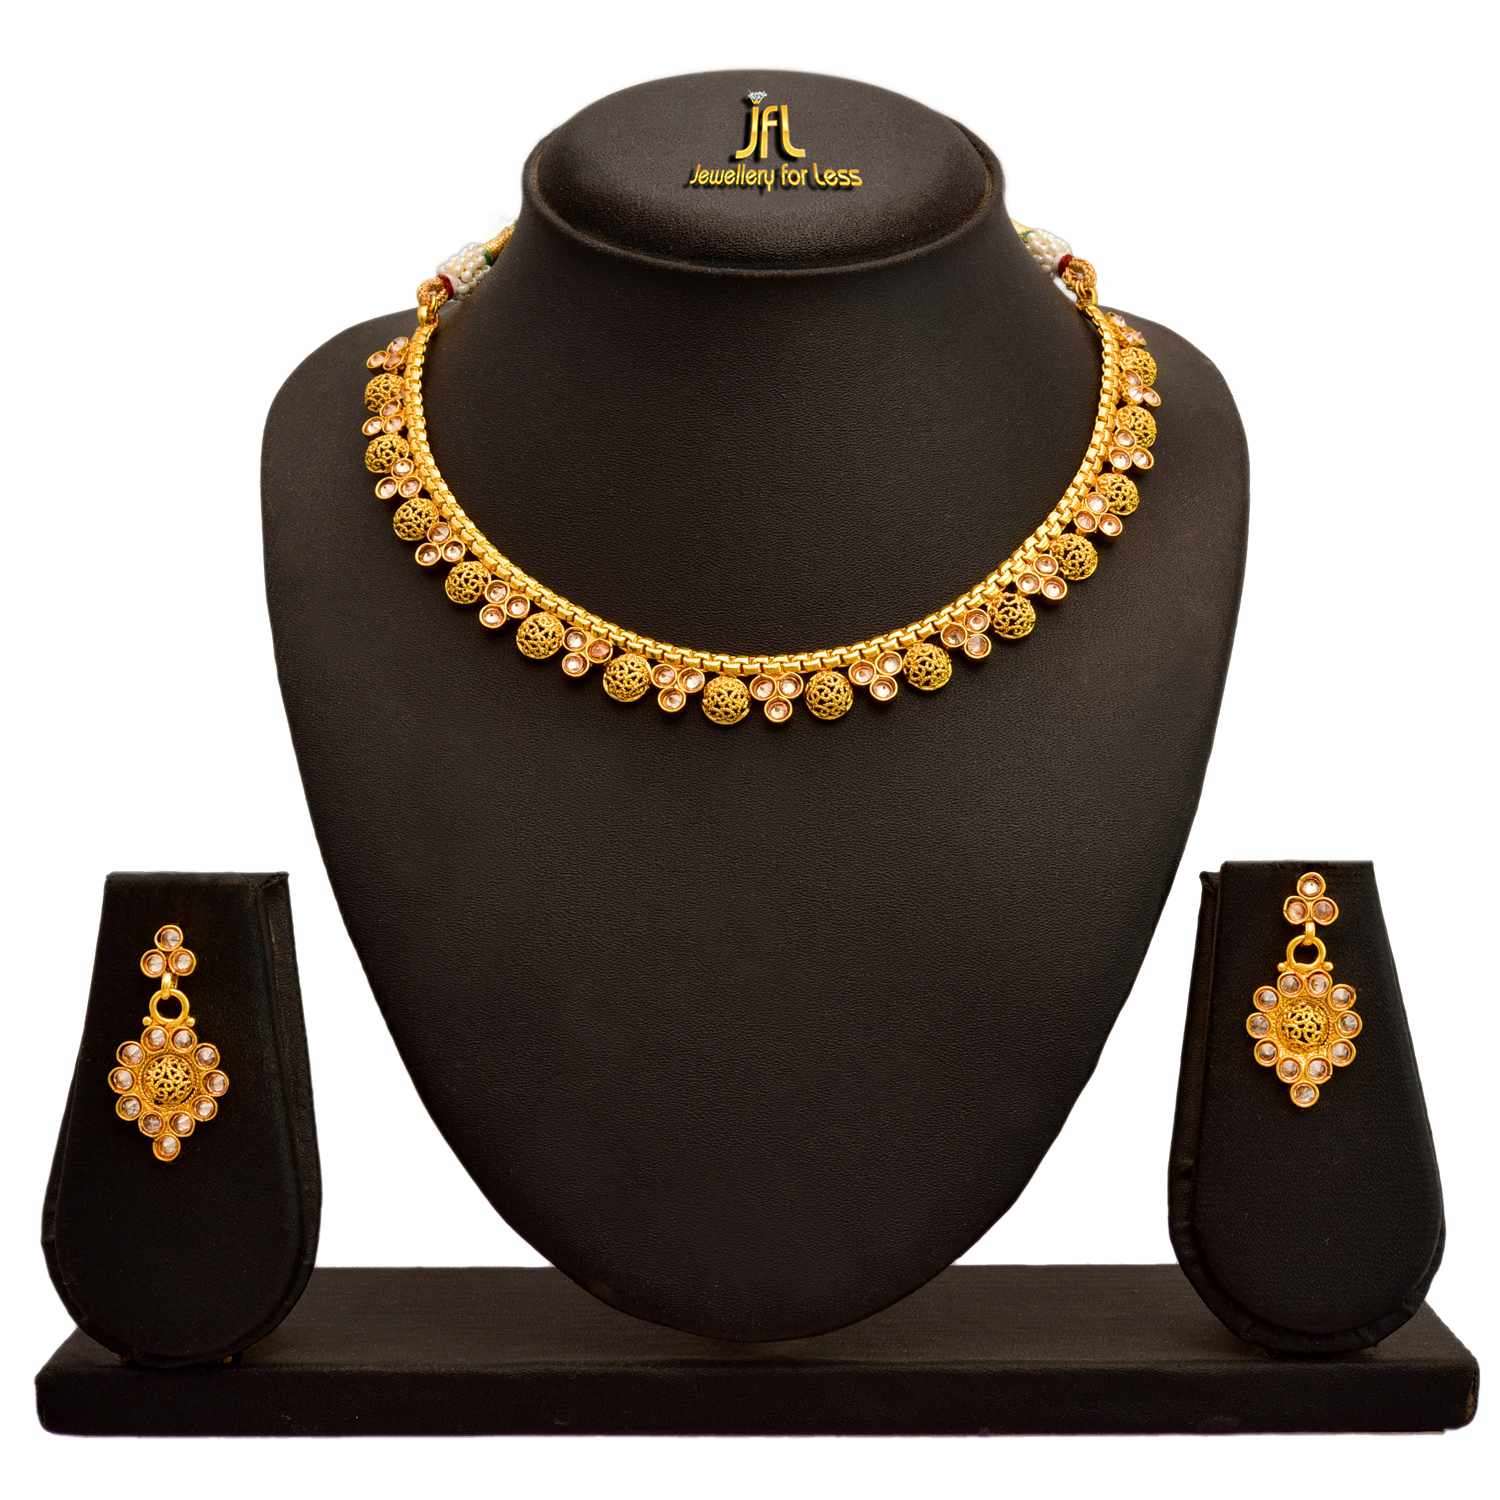 JFL -  Jewellery For Less Traditional Ethnic One Gram Gold Plated Polki Diamond Designer Necklace Set With Earrings For Women & Girls.